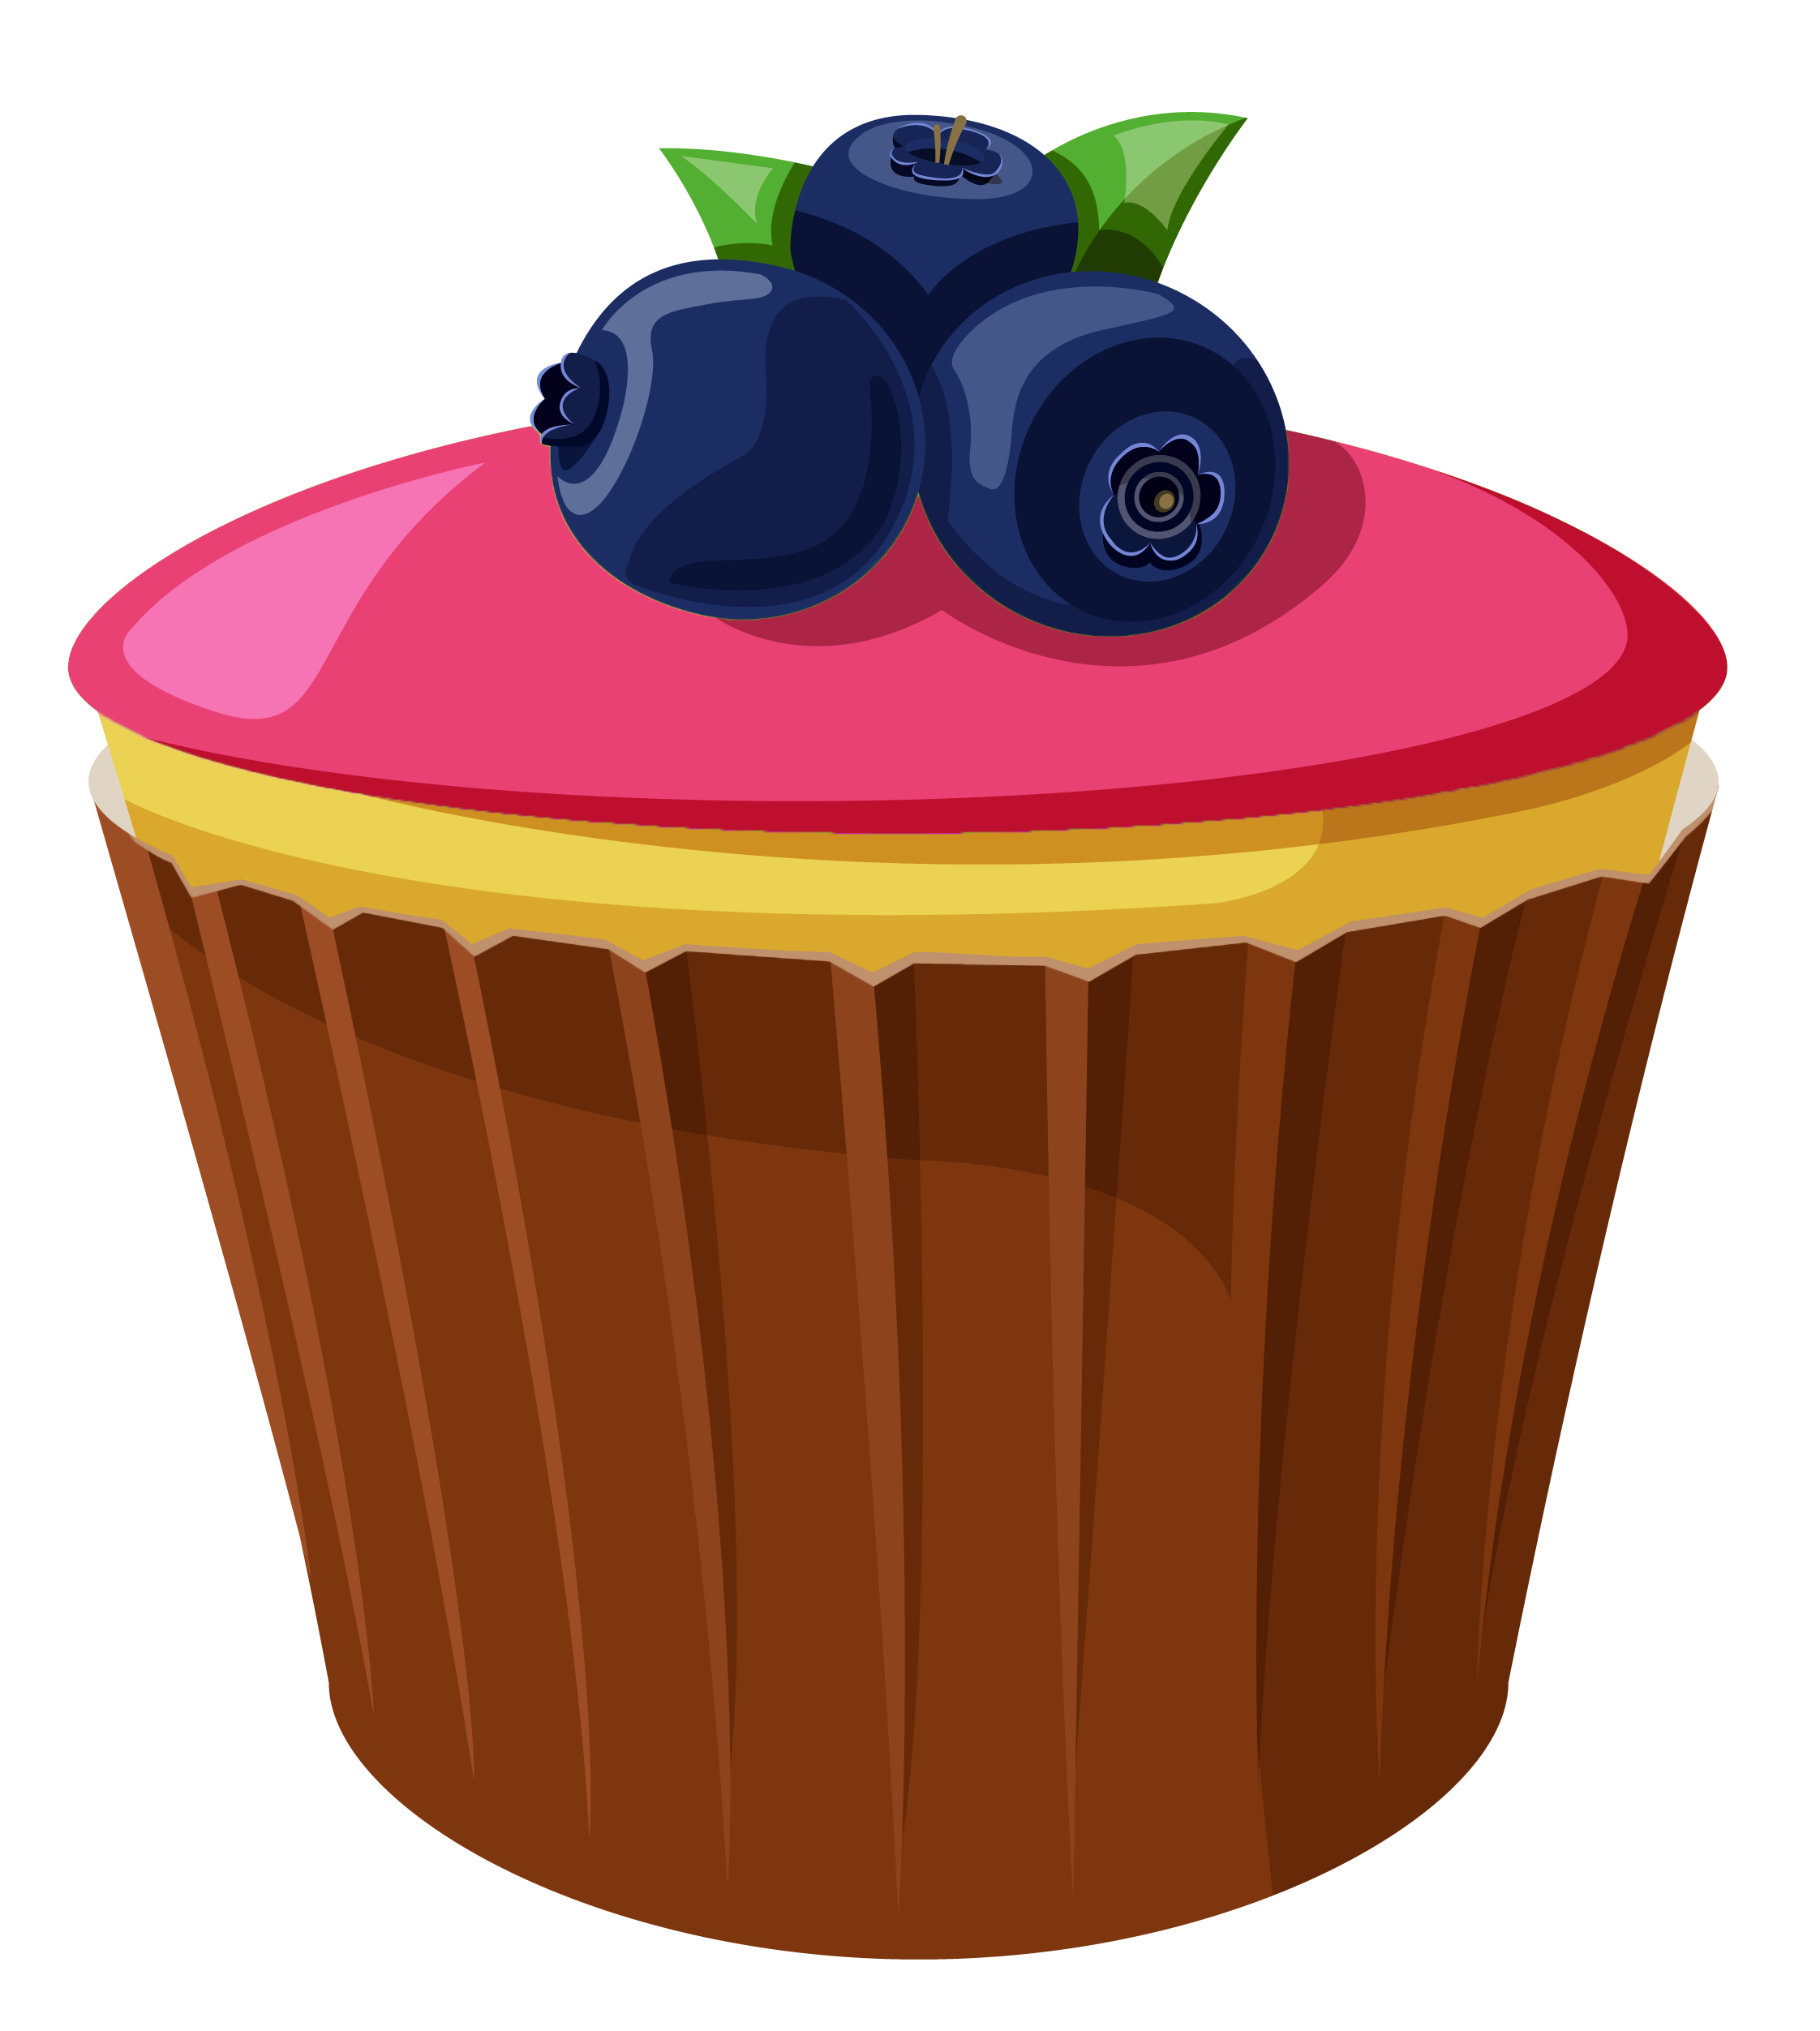 Mini Cake with Blueberries PNG Clipart Picture.